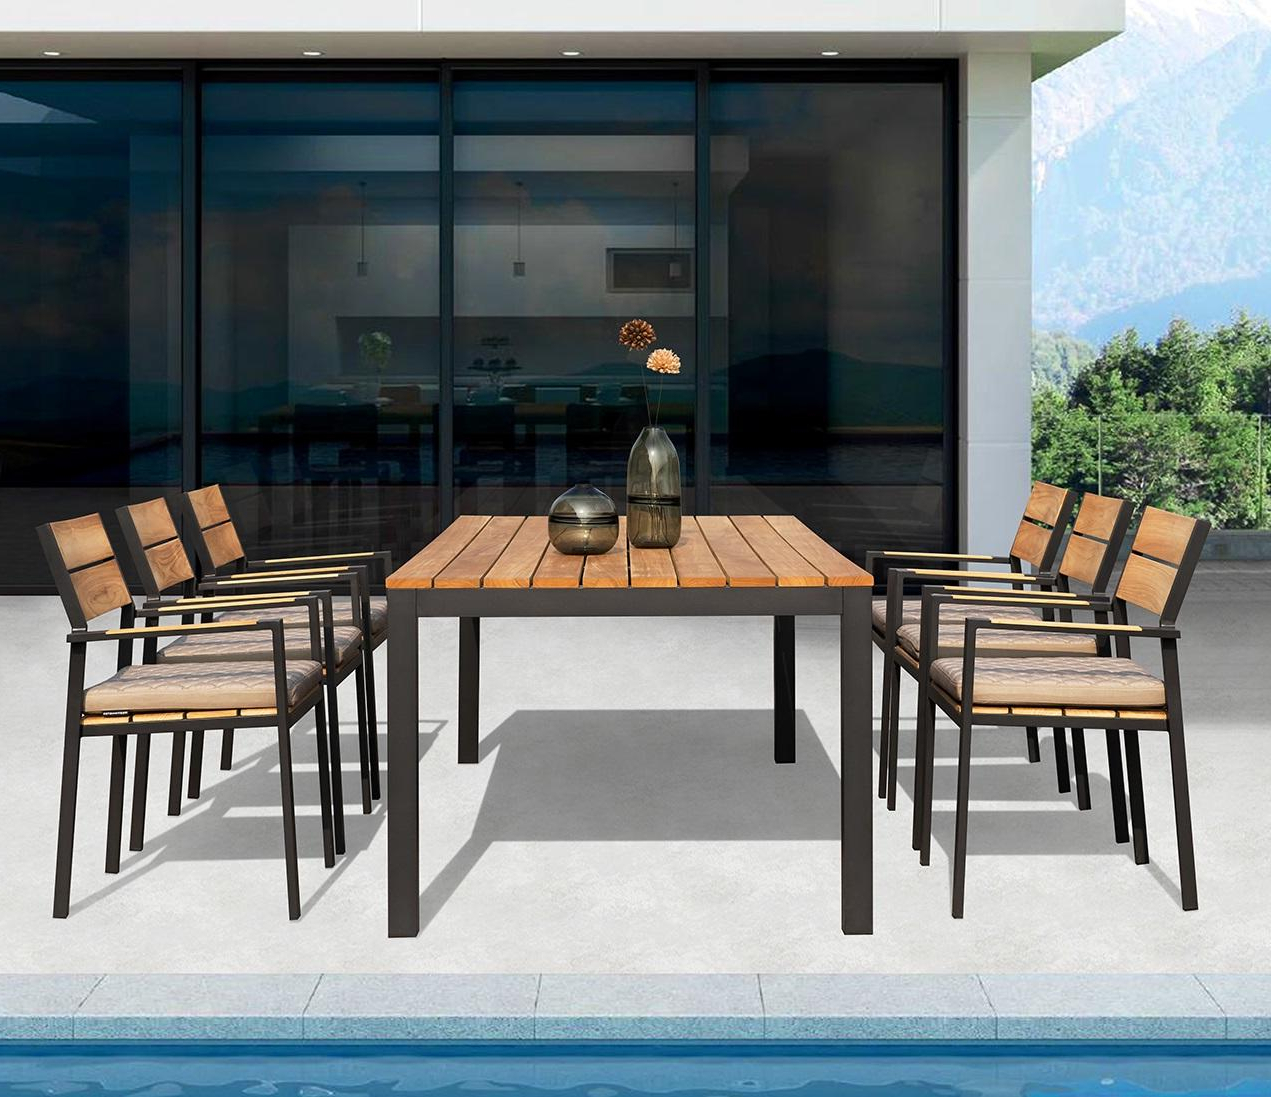 6 Seater Retangular Wood Contemporary Dining Tables Within Most Up To Date Modern Teak And Aluminium Garden Dining Table And Armchair Sets (View 10 of 30)